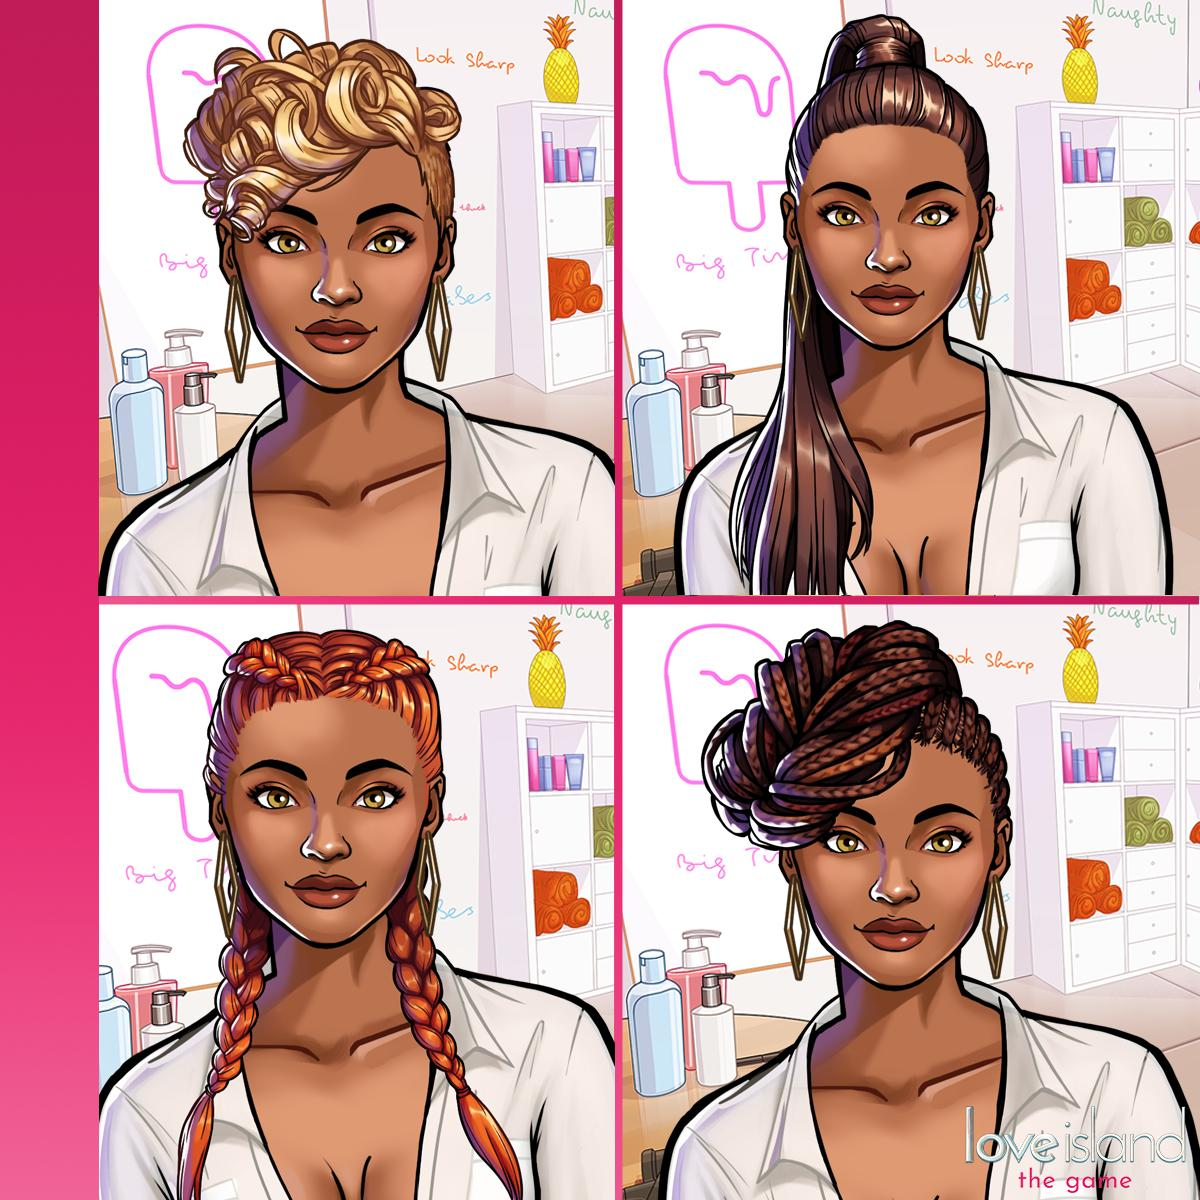 Fusebox Games On Twitter Dazzle In The Upcoming Finale And Change Up Your Look With These 4 Stunning New Hairstyles Which Hair Will You Choose For The Ultimate Finale Look Getsassy